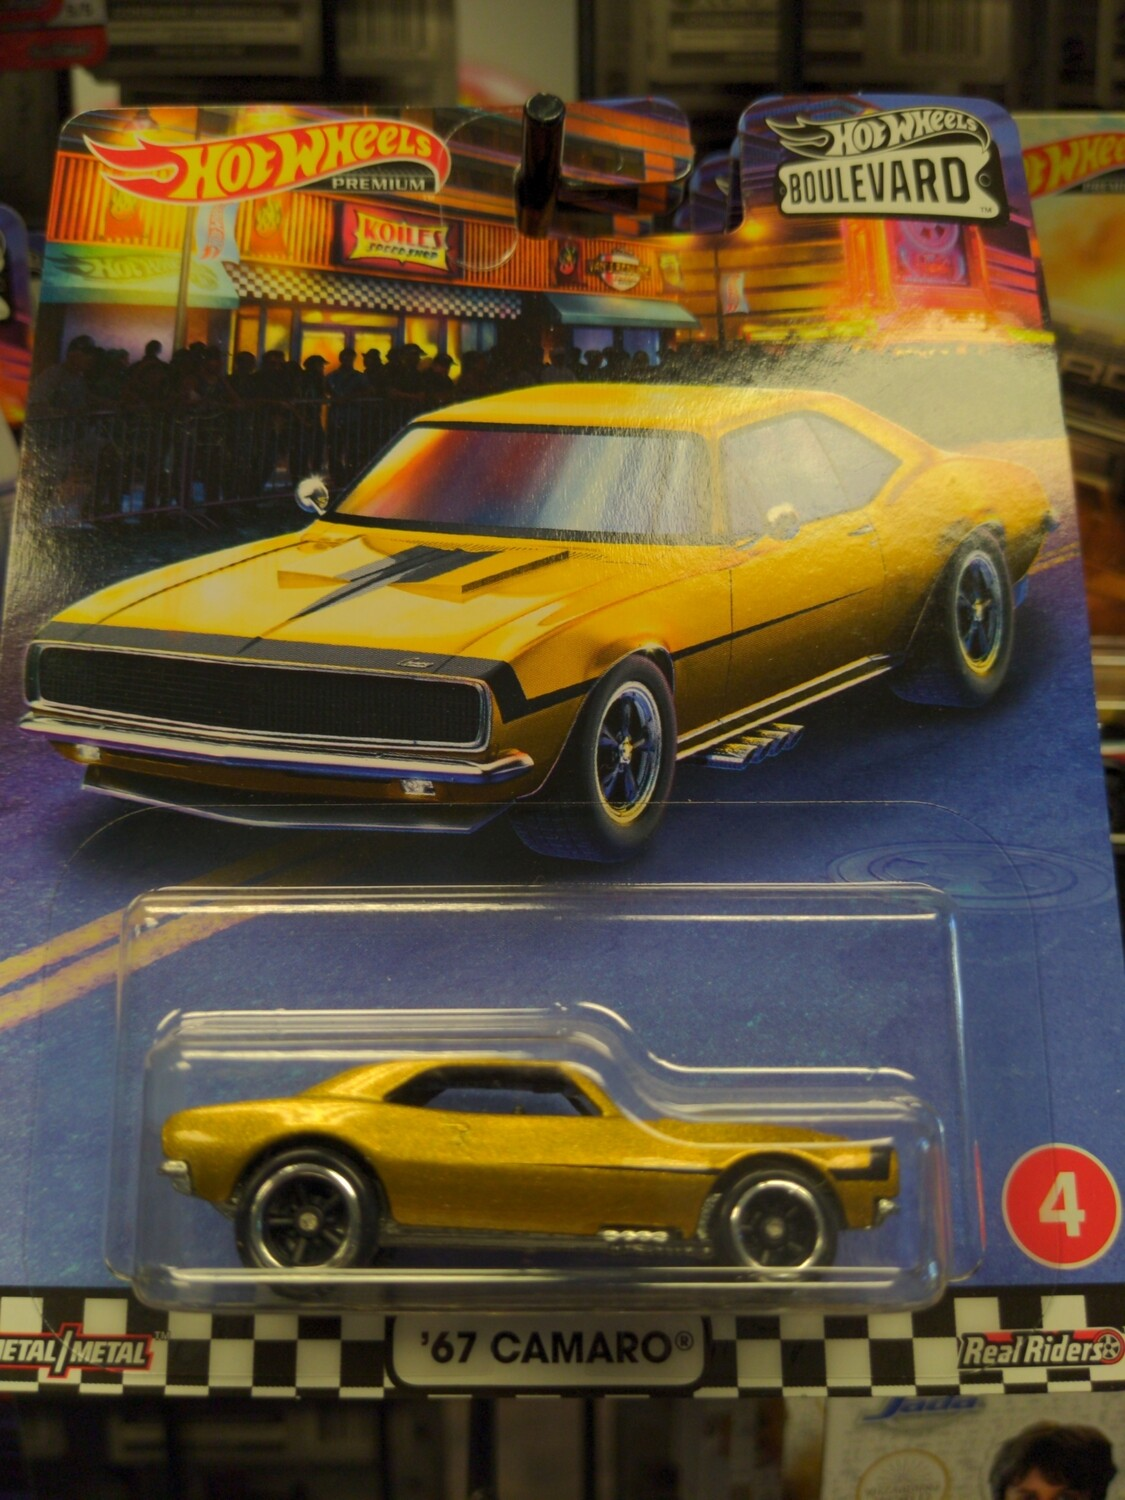 Hot Wheels - Boulevard - 67 Camaro